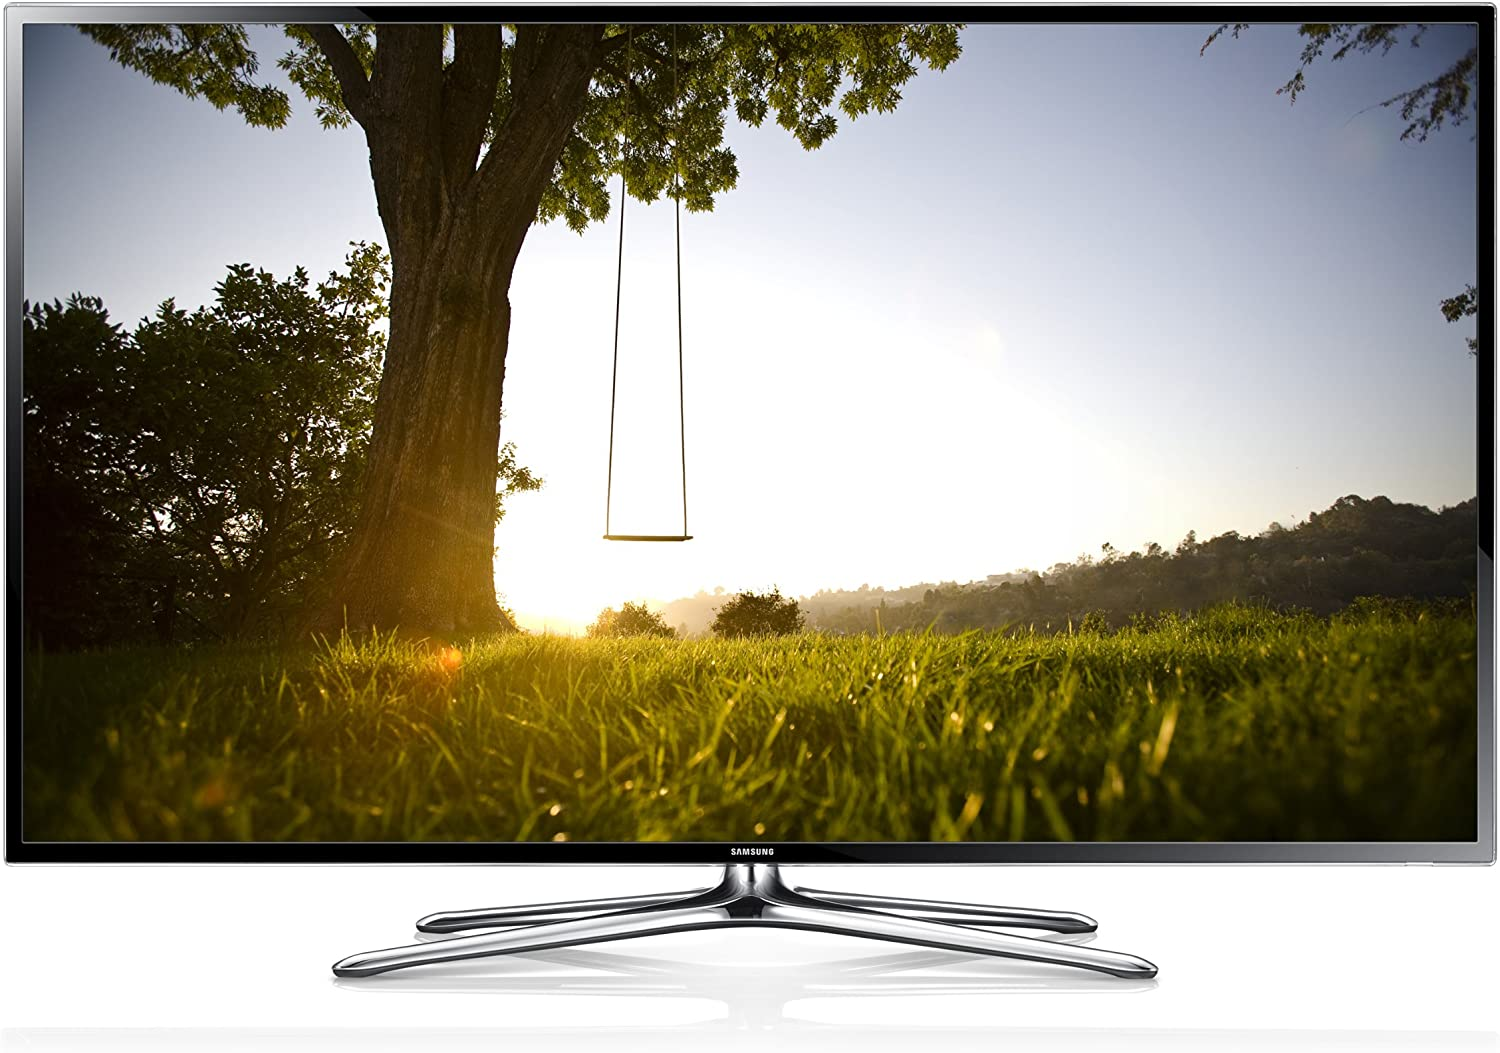 Samsung UE46F6200 - Televisor LED, 46 pulgadas, SmartTV (Full HD 1080p, Clear Motion Rate 100 Hz), negro: Amazon.es: Electrónica